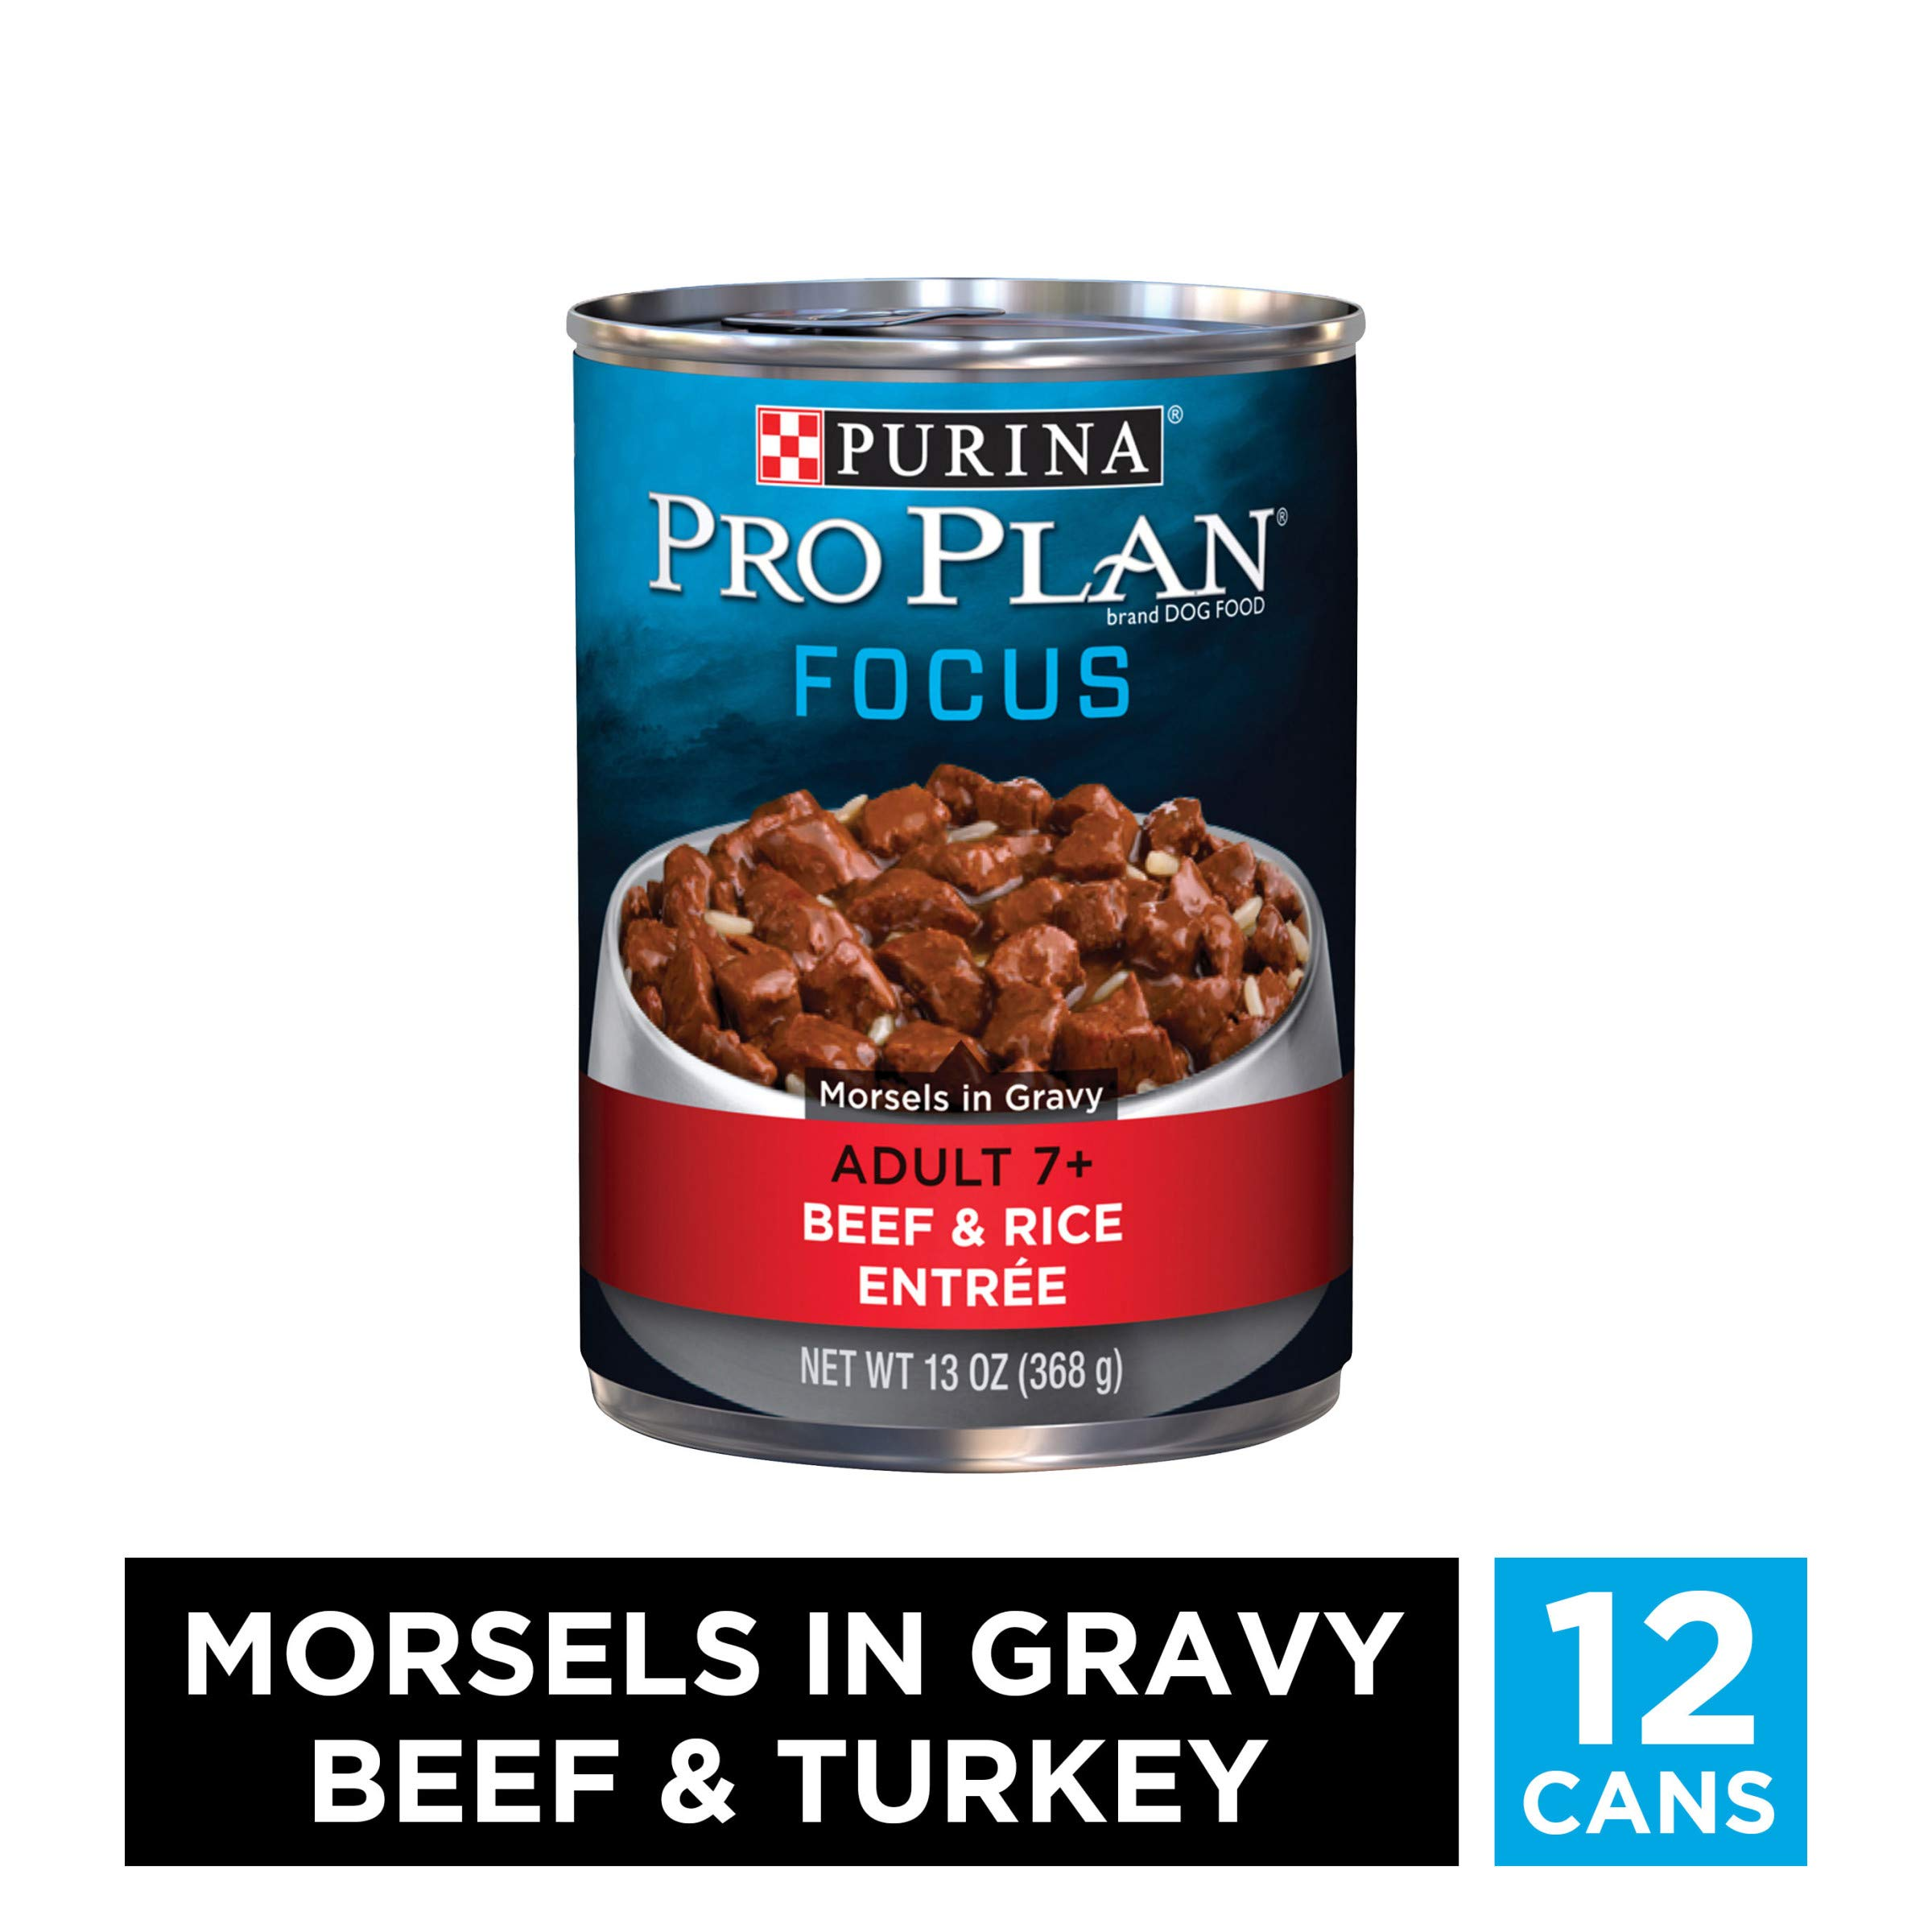 Purina Pro Plan Senior Gravy Wet Dog Food, FOCUS Morsels in Gravy Beef & Rice Entree - (12) 13 oz. Cans by PURINA Pro Plan